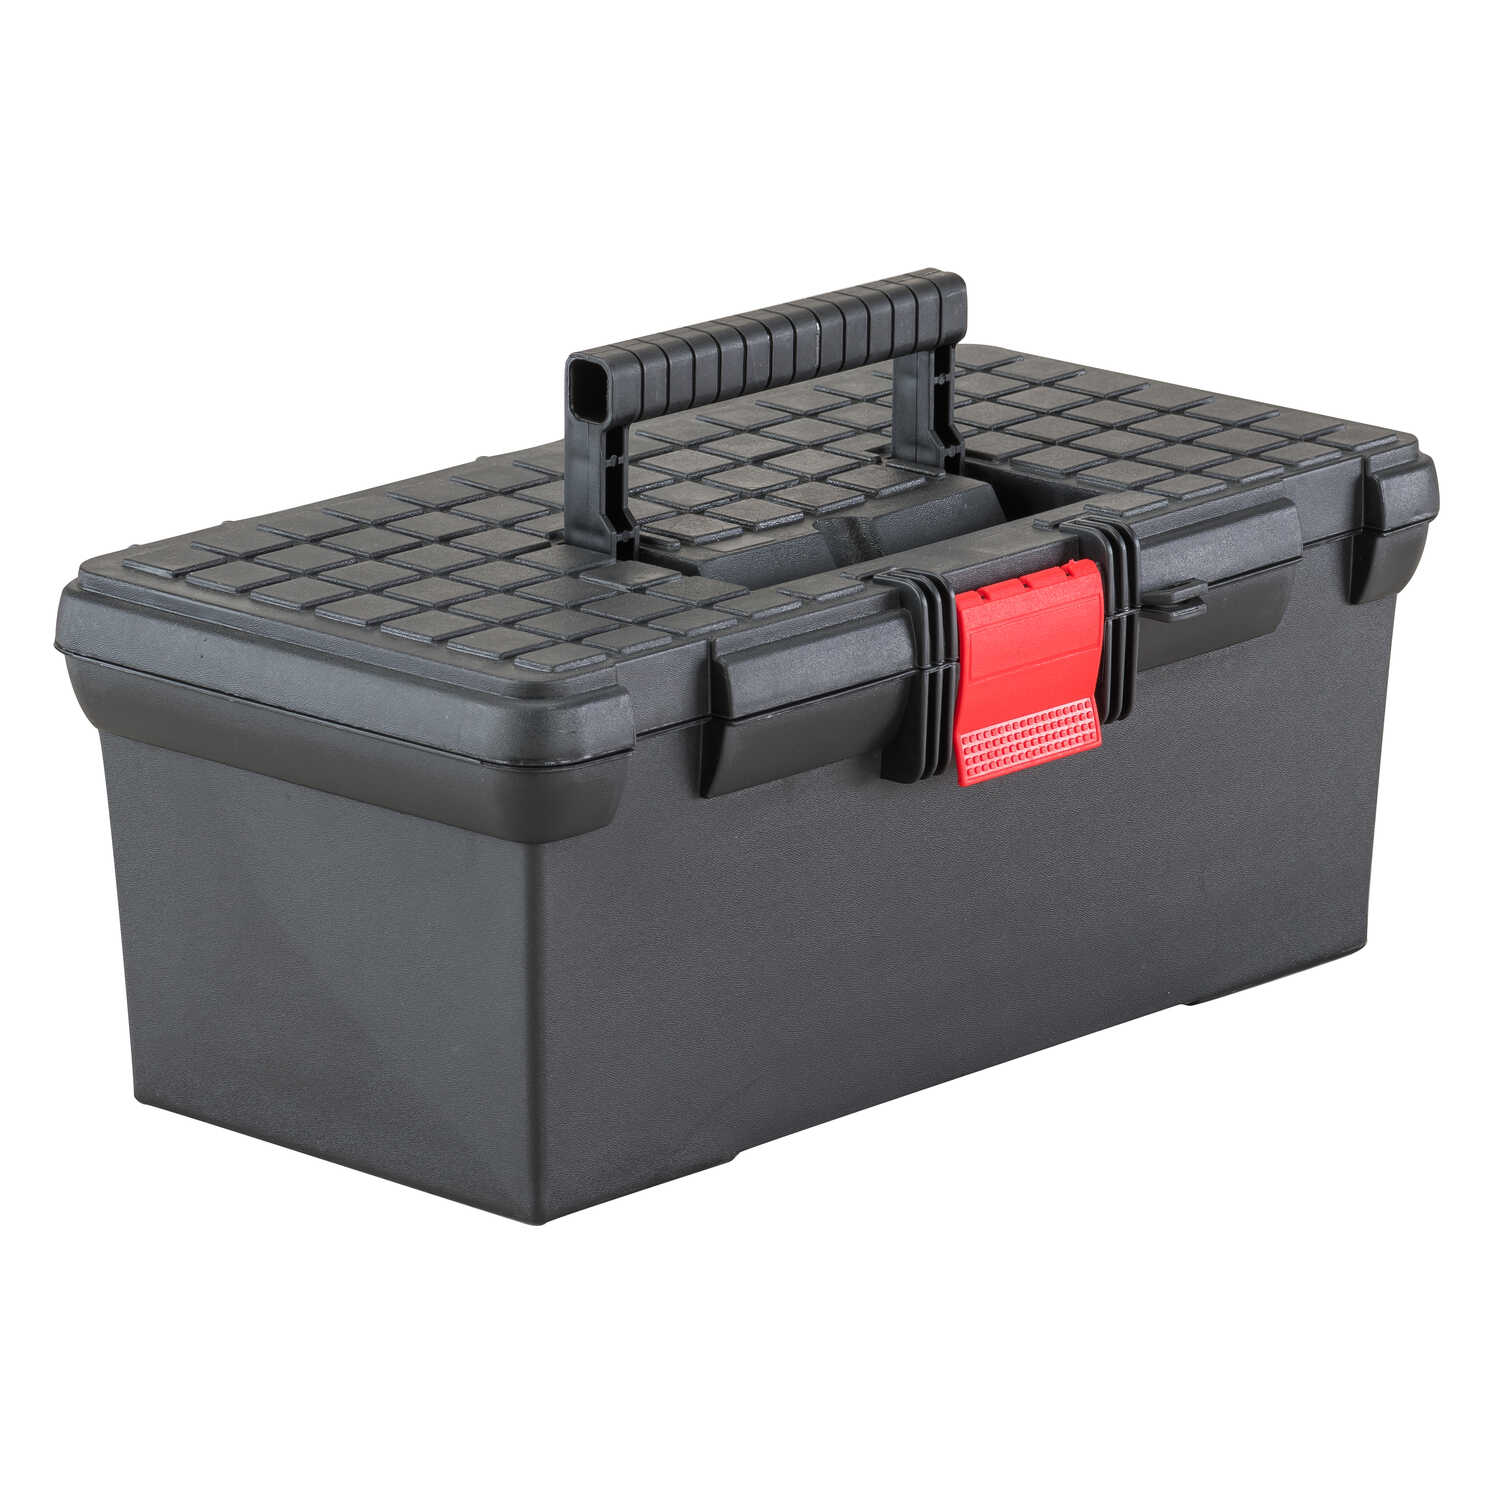 Craftsman  16 in. Plastic  Classic  Tool Box  6.4 in. H Black